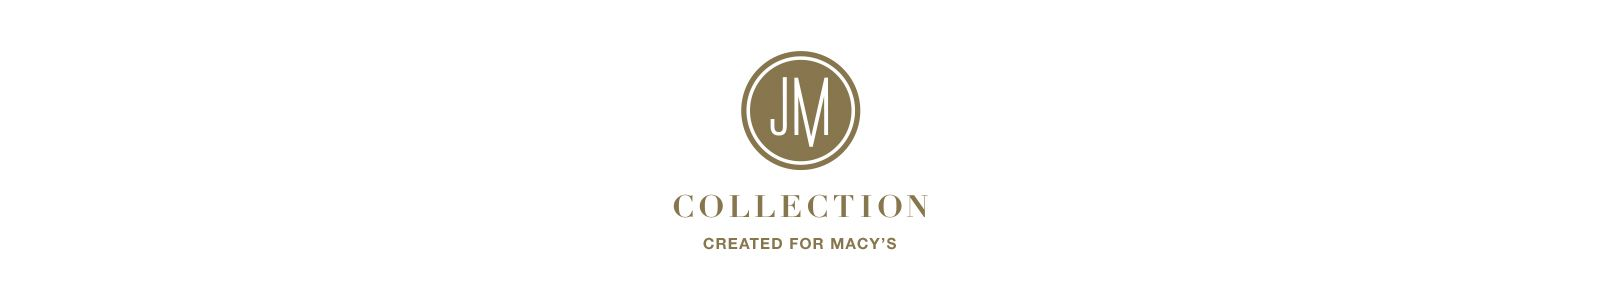 Collection, Created For Macy's